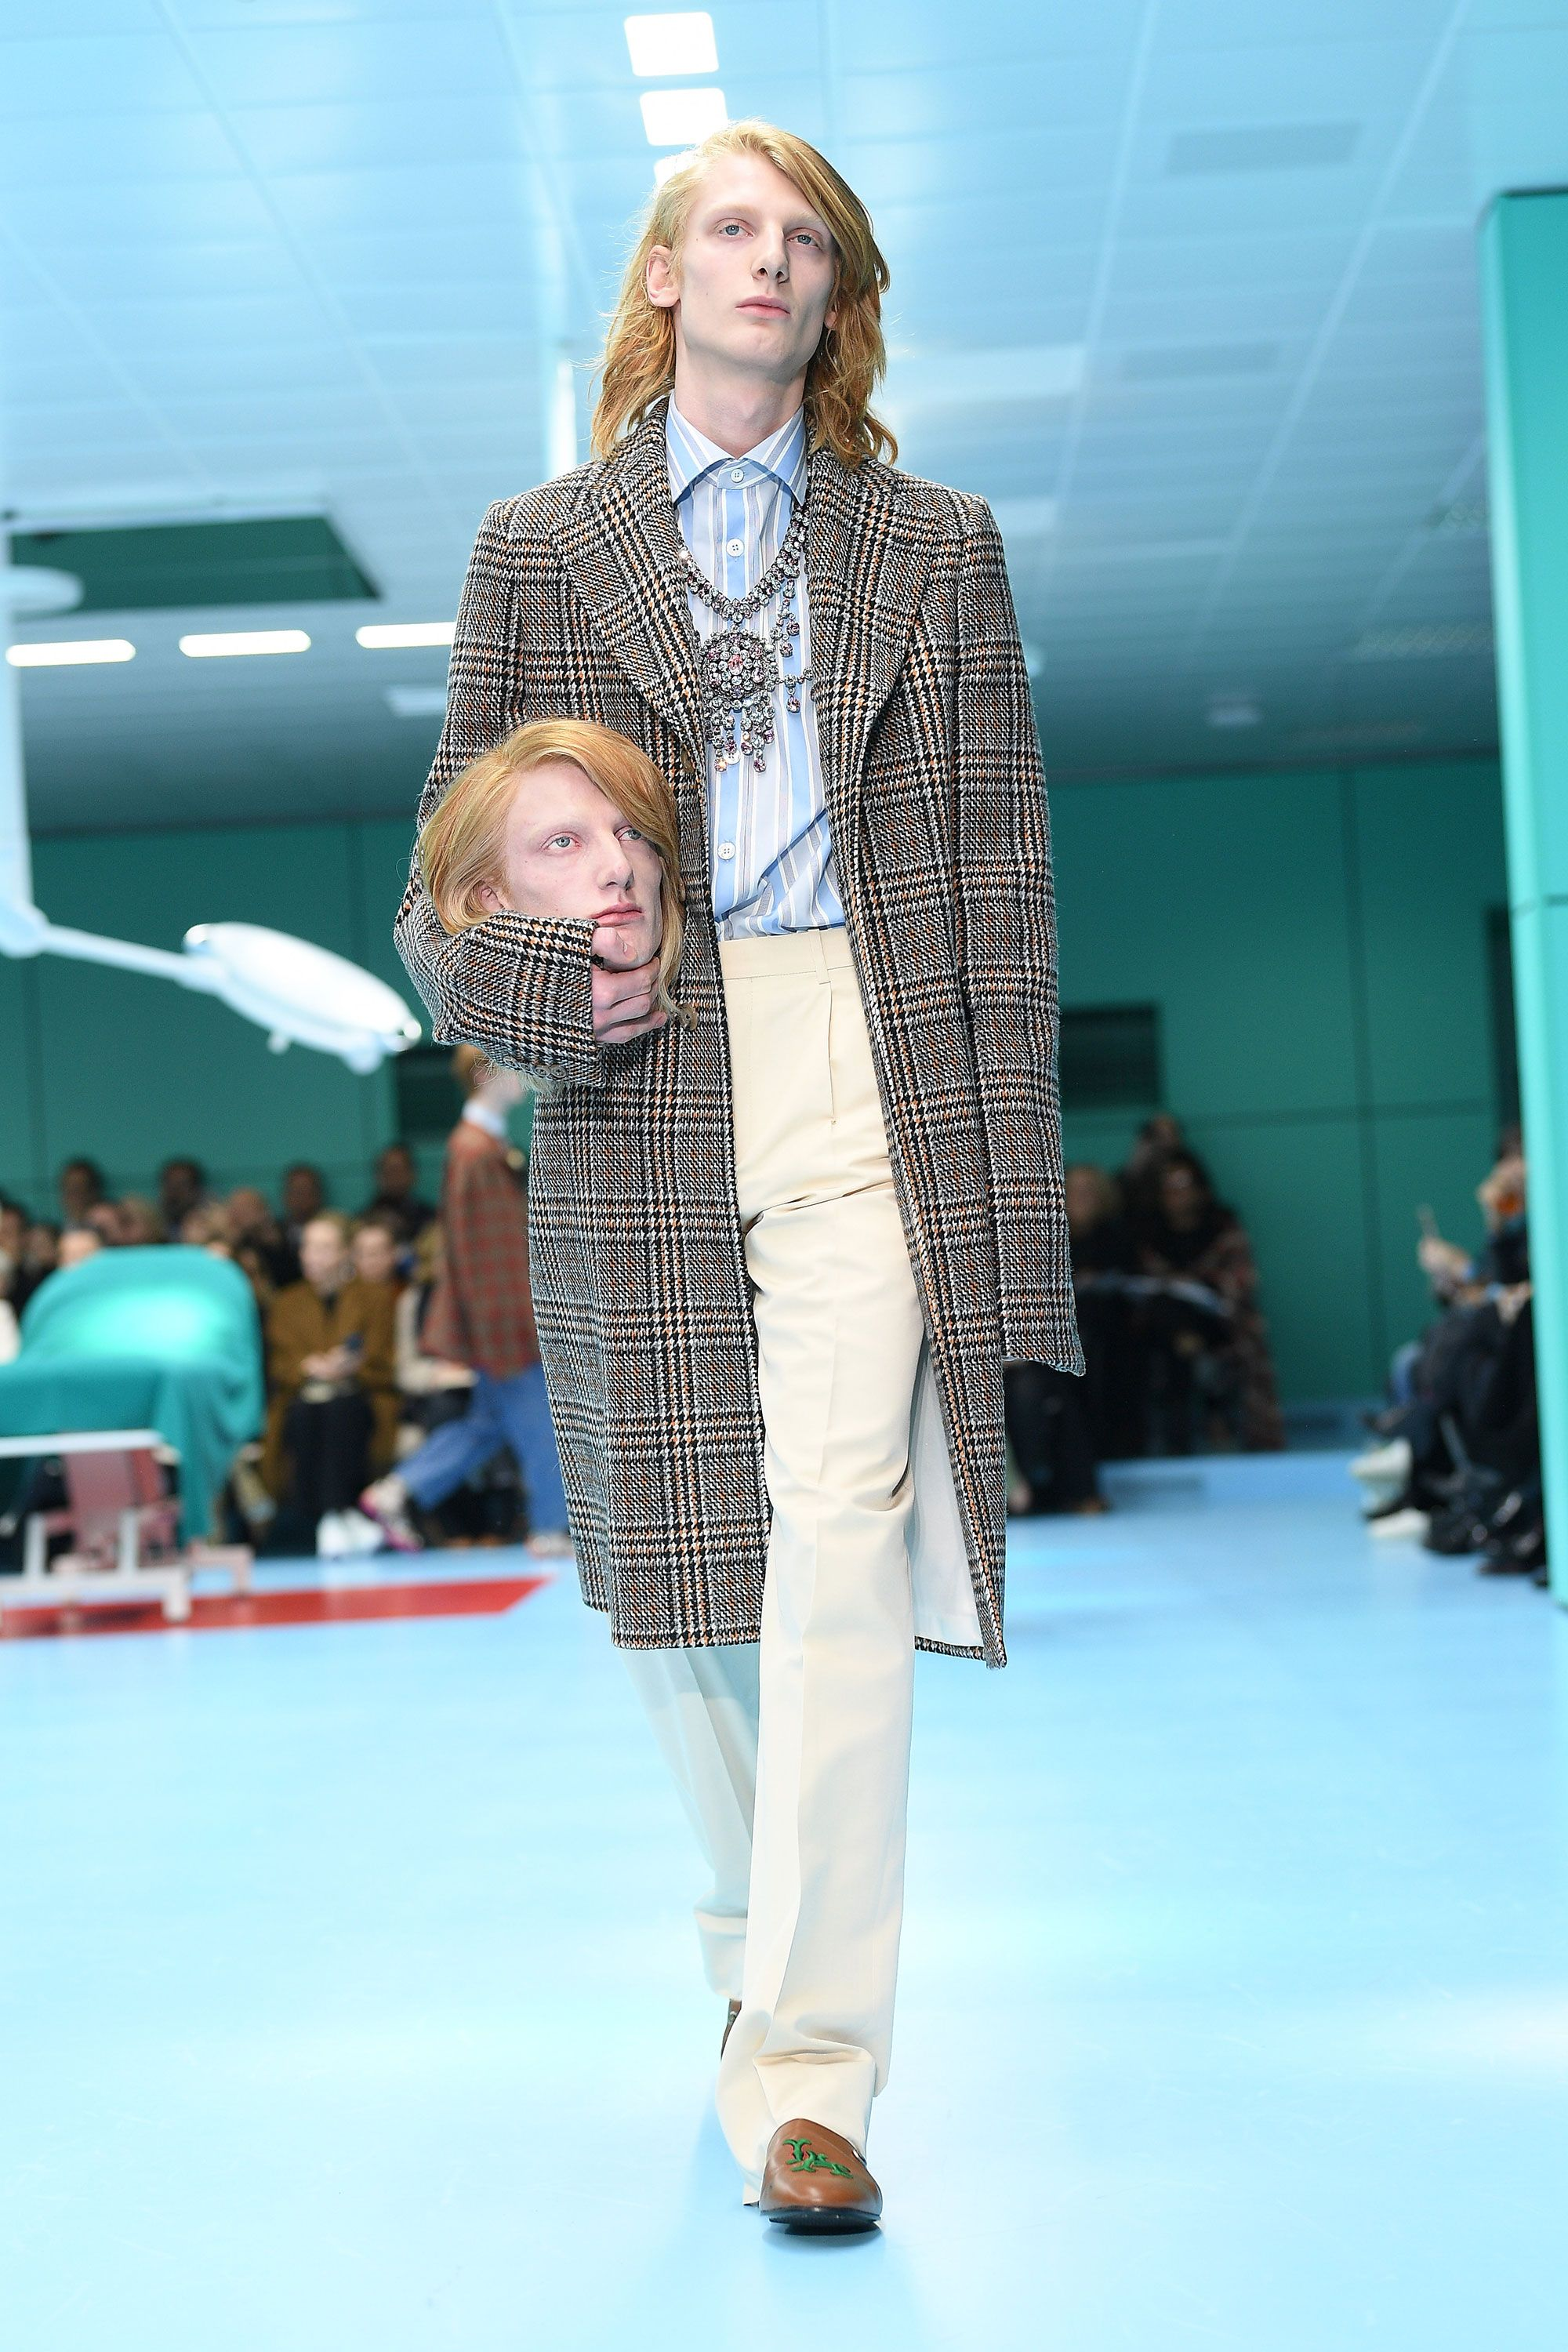 Gucci Show Features Models Carrying Severed Heads